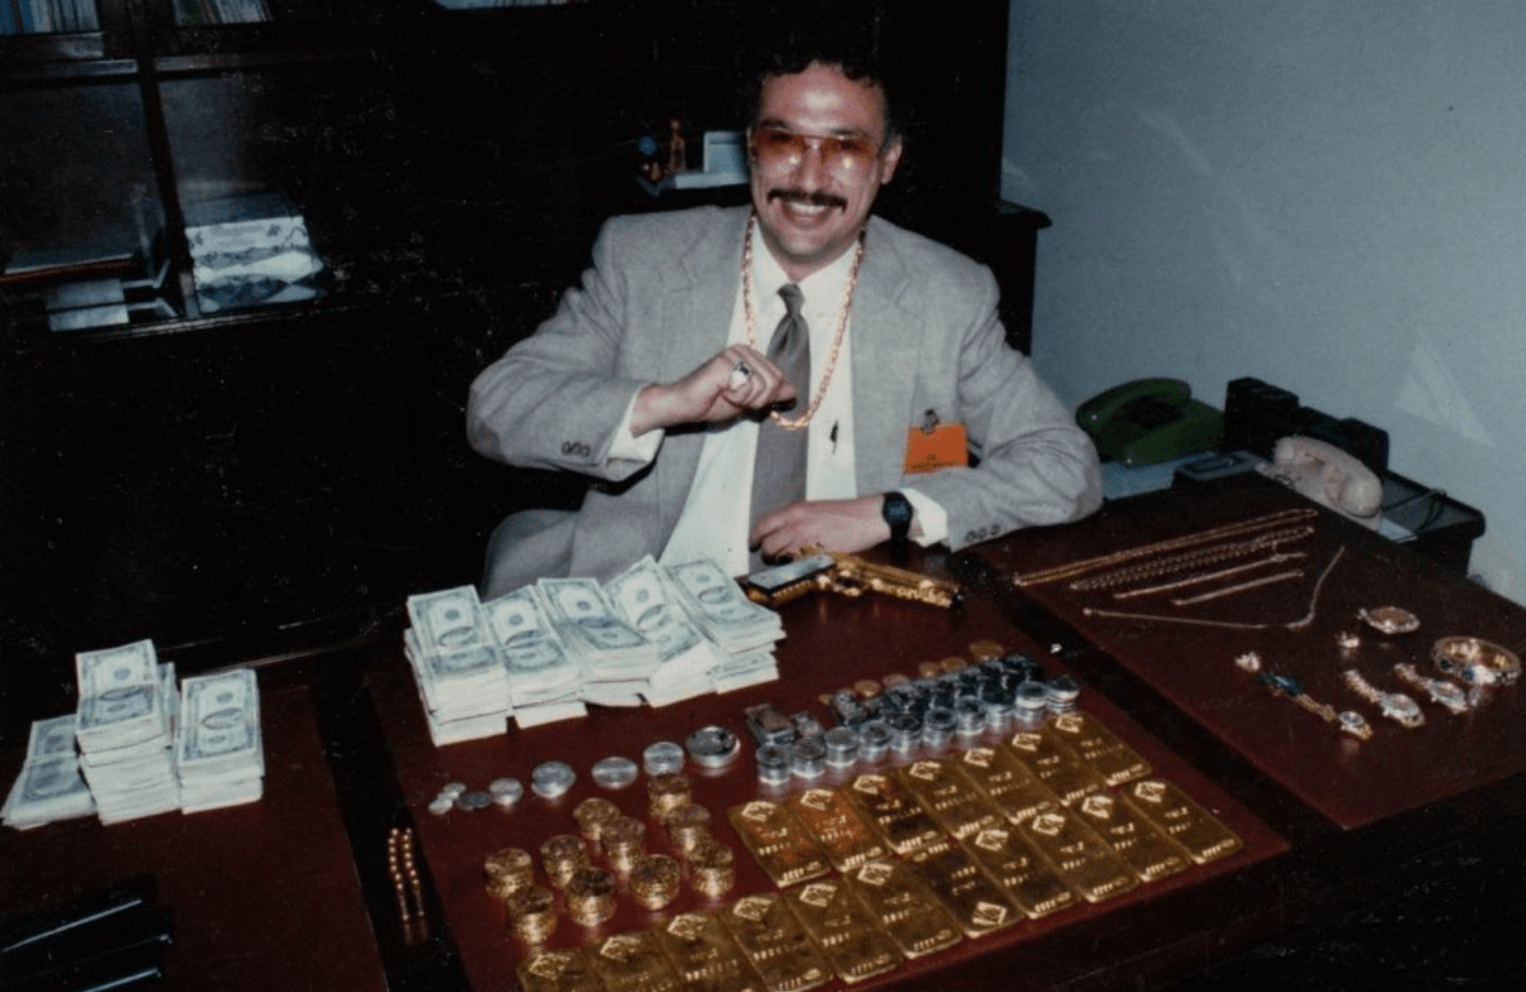 Meet the retired DEA agents who took down Pablo Escobar, the world's most notorious drug kingpin